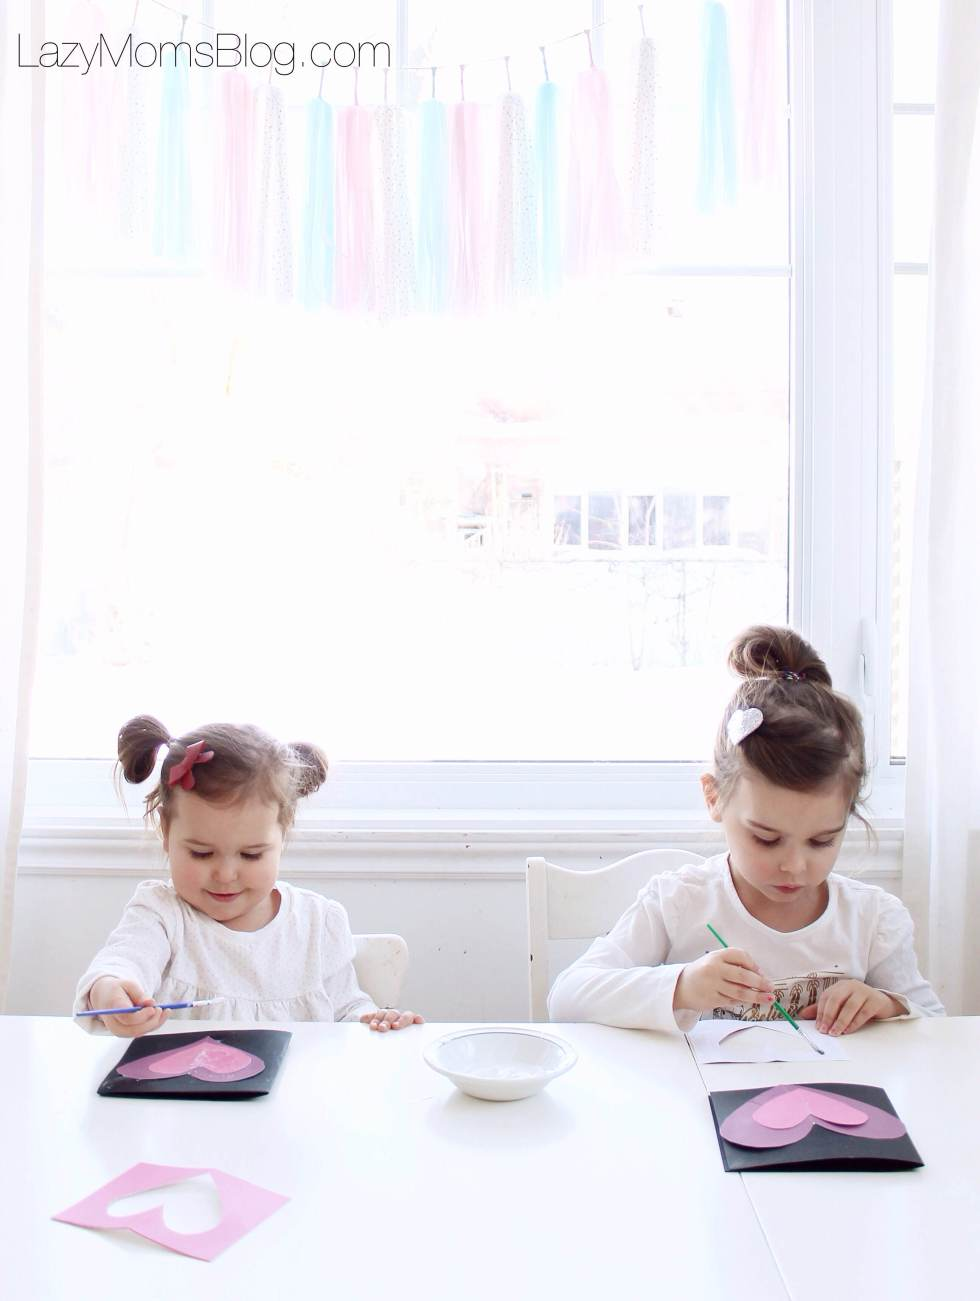 Valentines days ideas to do with kids, that they can actually make alone!